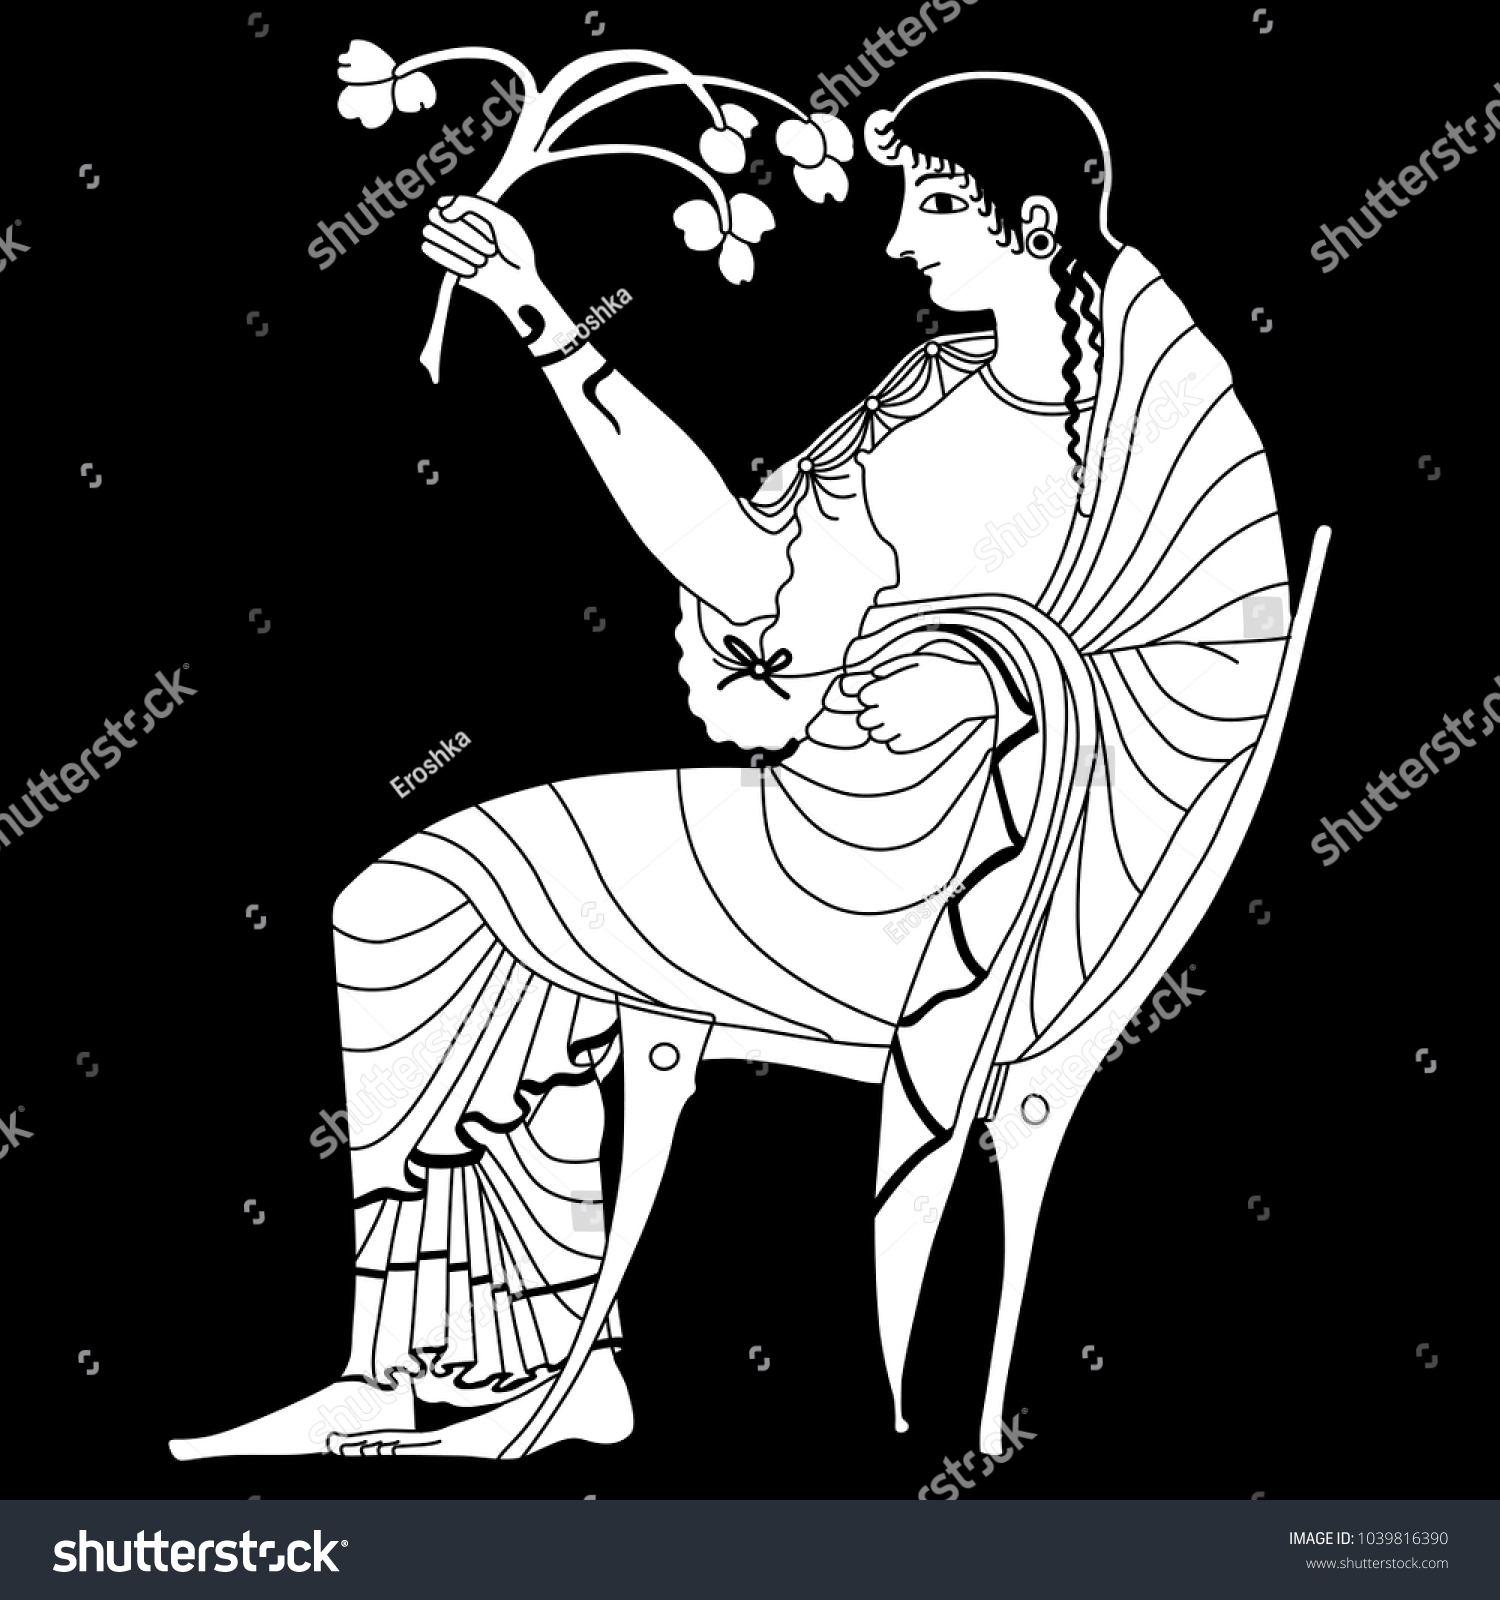 Isolated vector illustration black white linear stock vector black and white linear silhouette of ancient greek goddess demeter or persephone buycottarizona Image collections